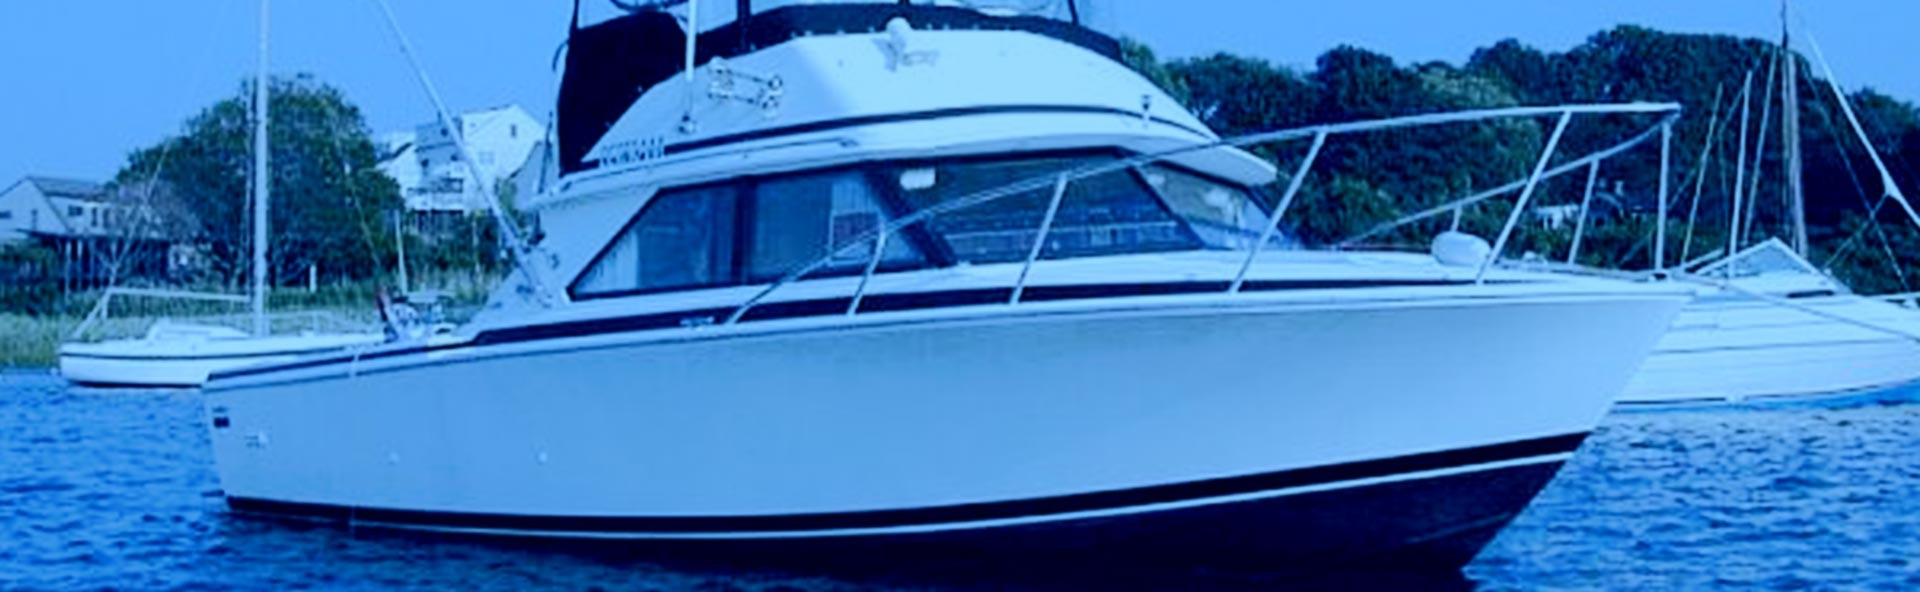 boatweb03blue